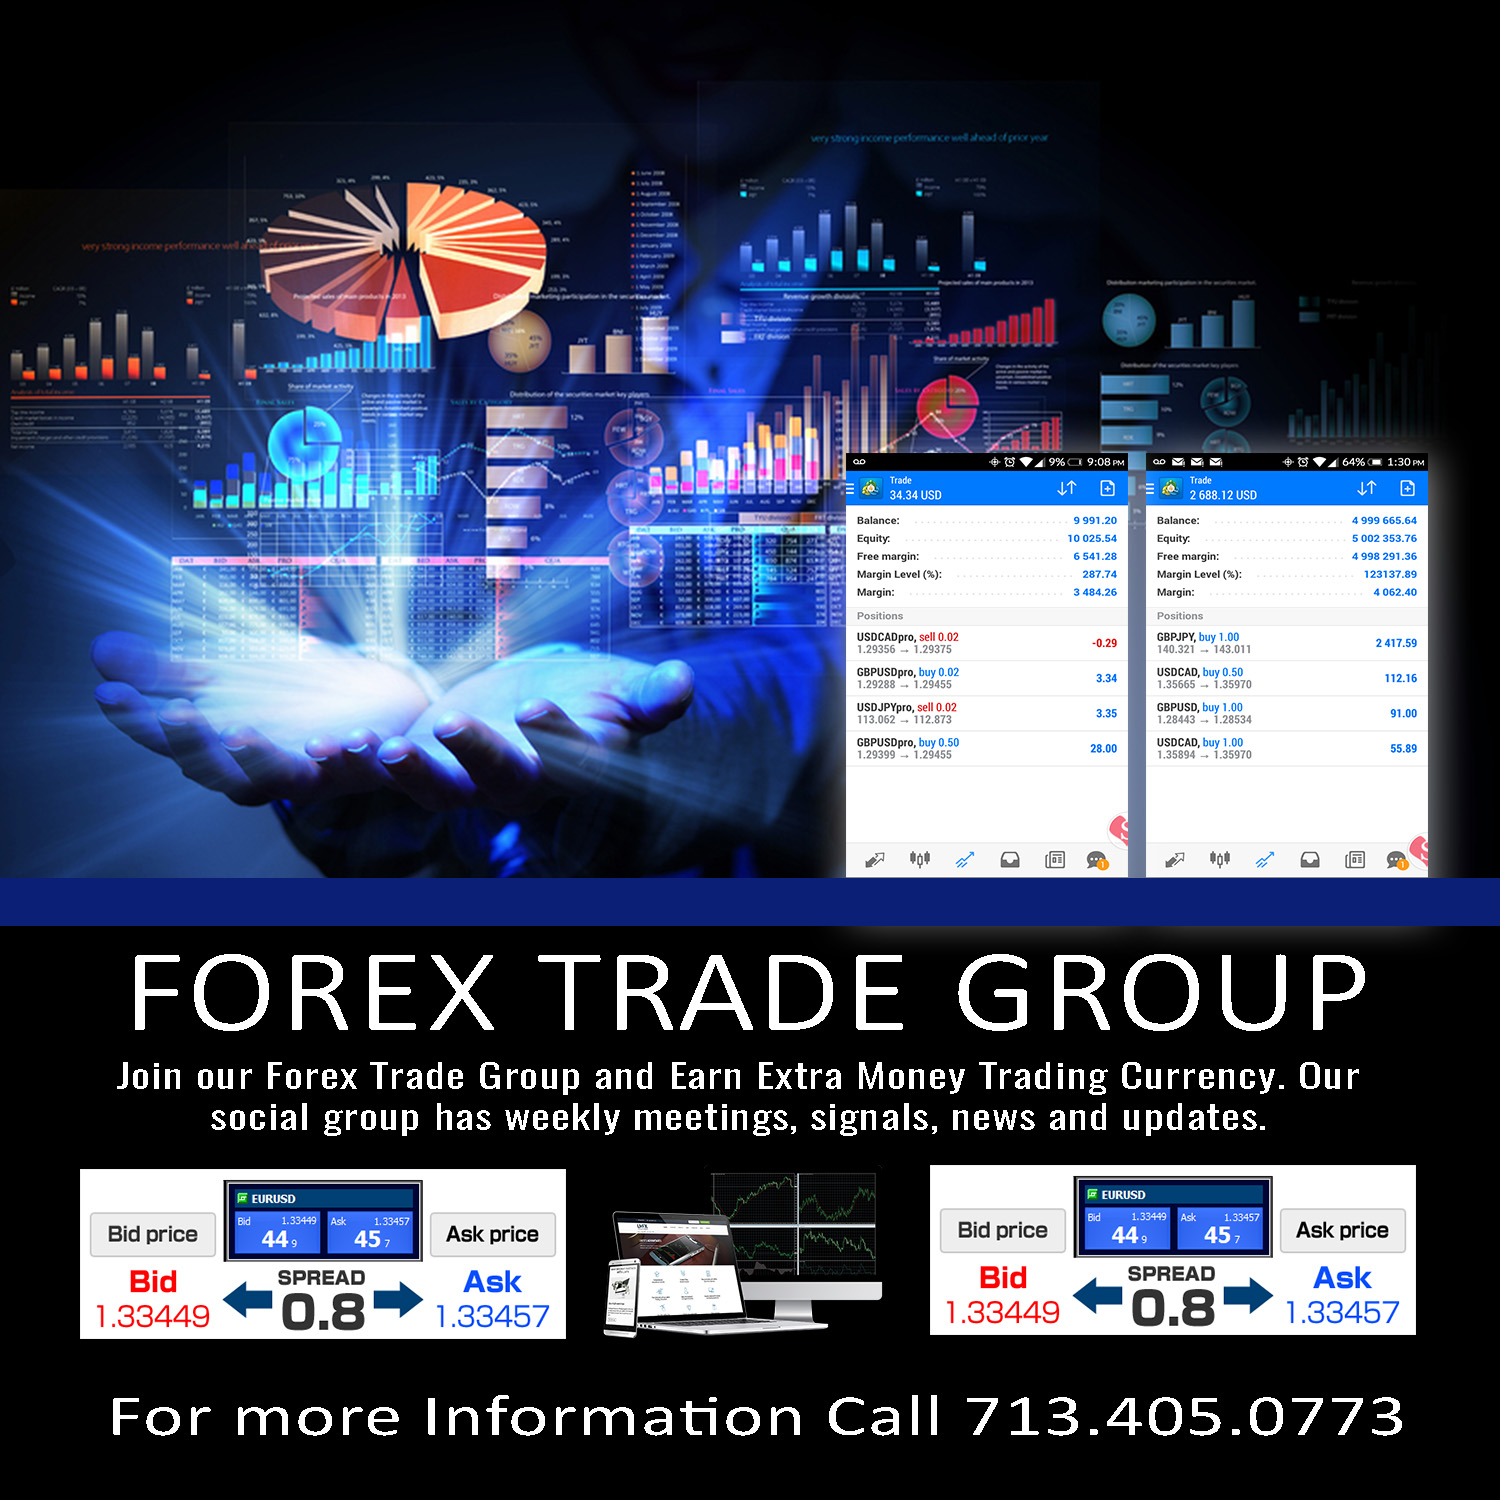 Forex discussion groups